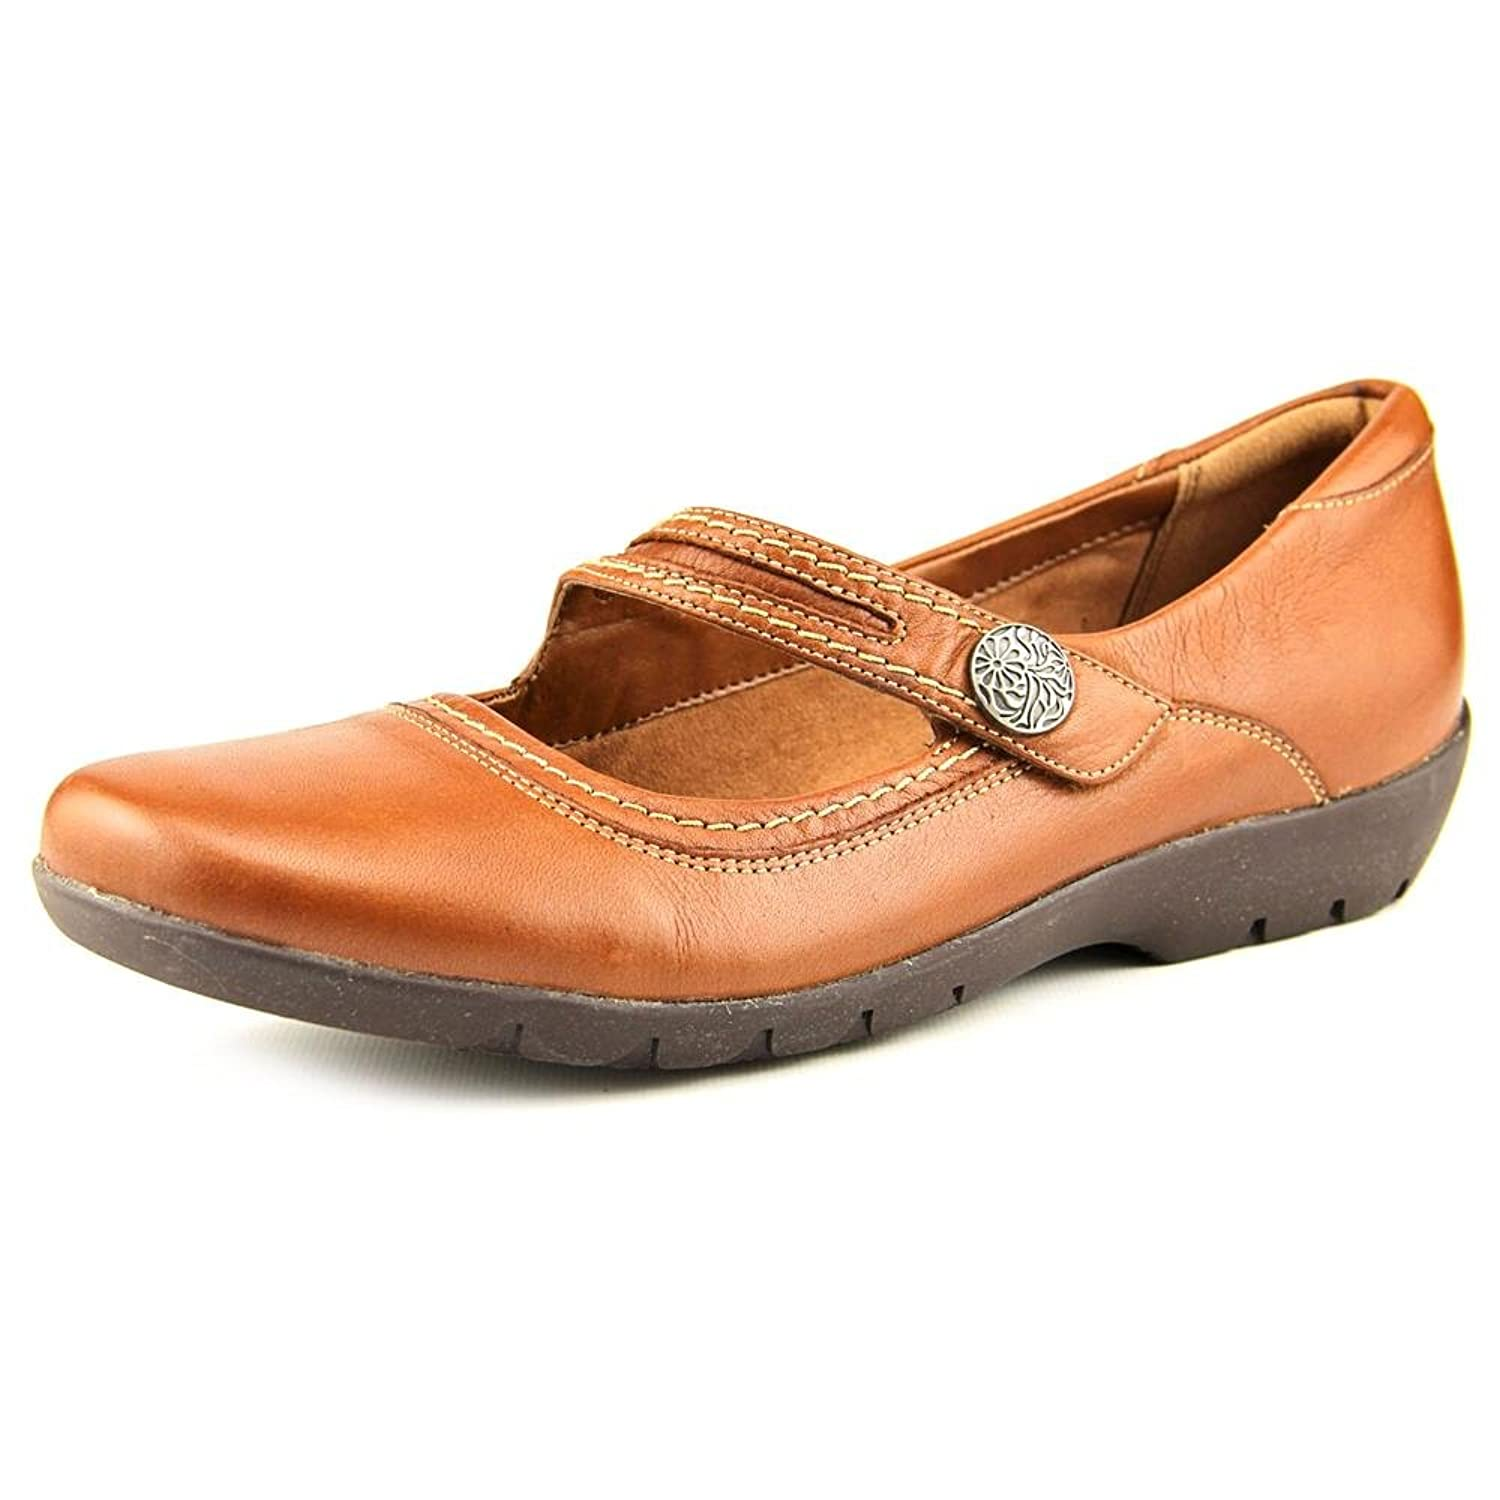 10 Best Clarks Shoes For Women With Flat Feet 2016-2017 On Flipboard